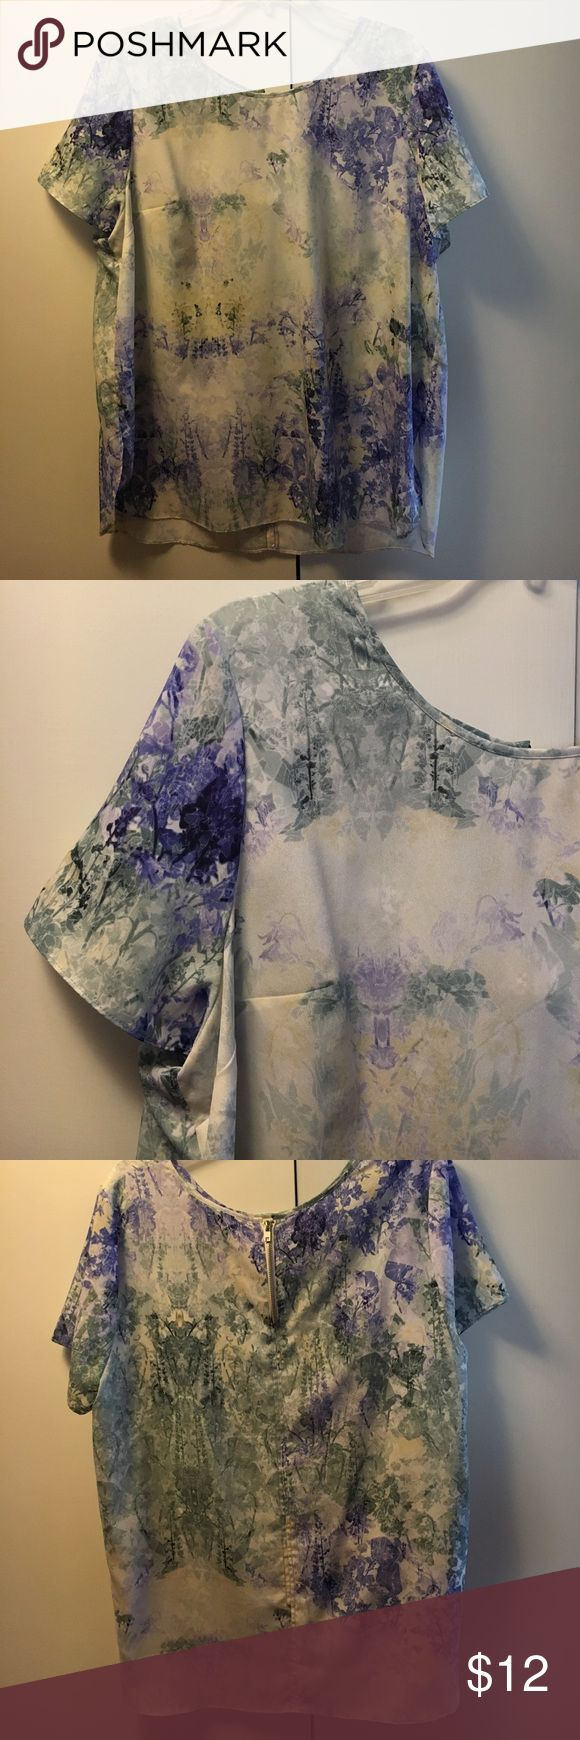 Beautiful, loose fitting top Comfortable, loose fitting top. Perfect for a summer day! Charlie Jade Tops